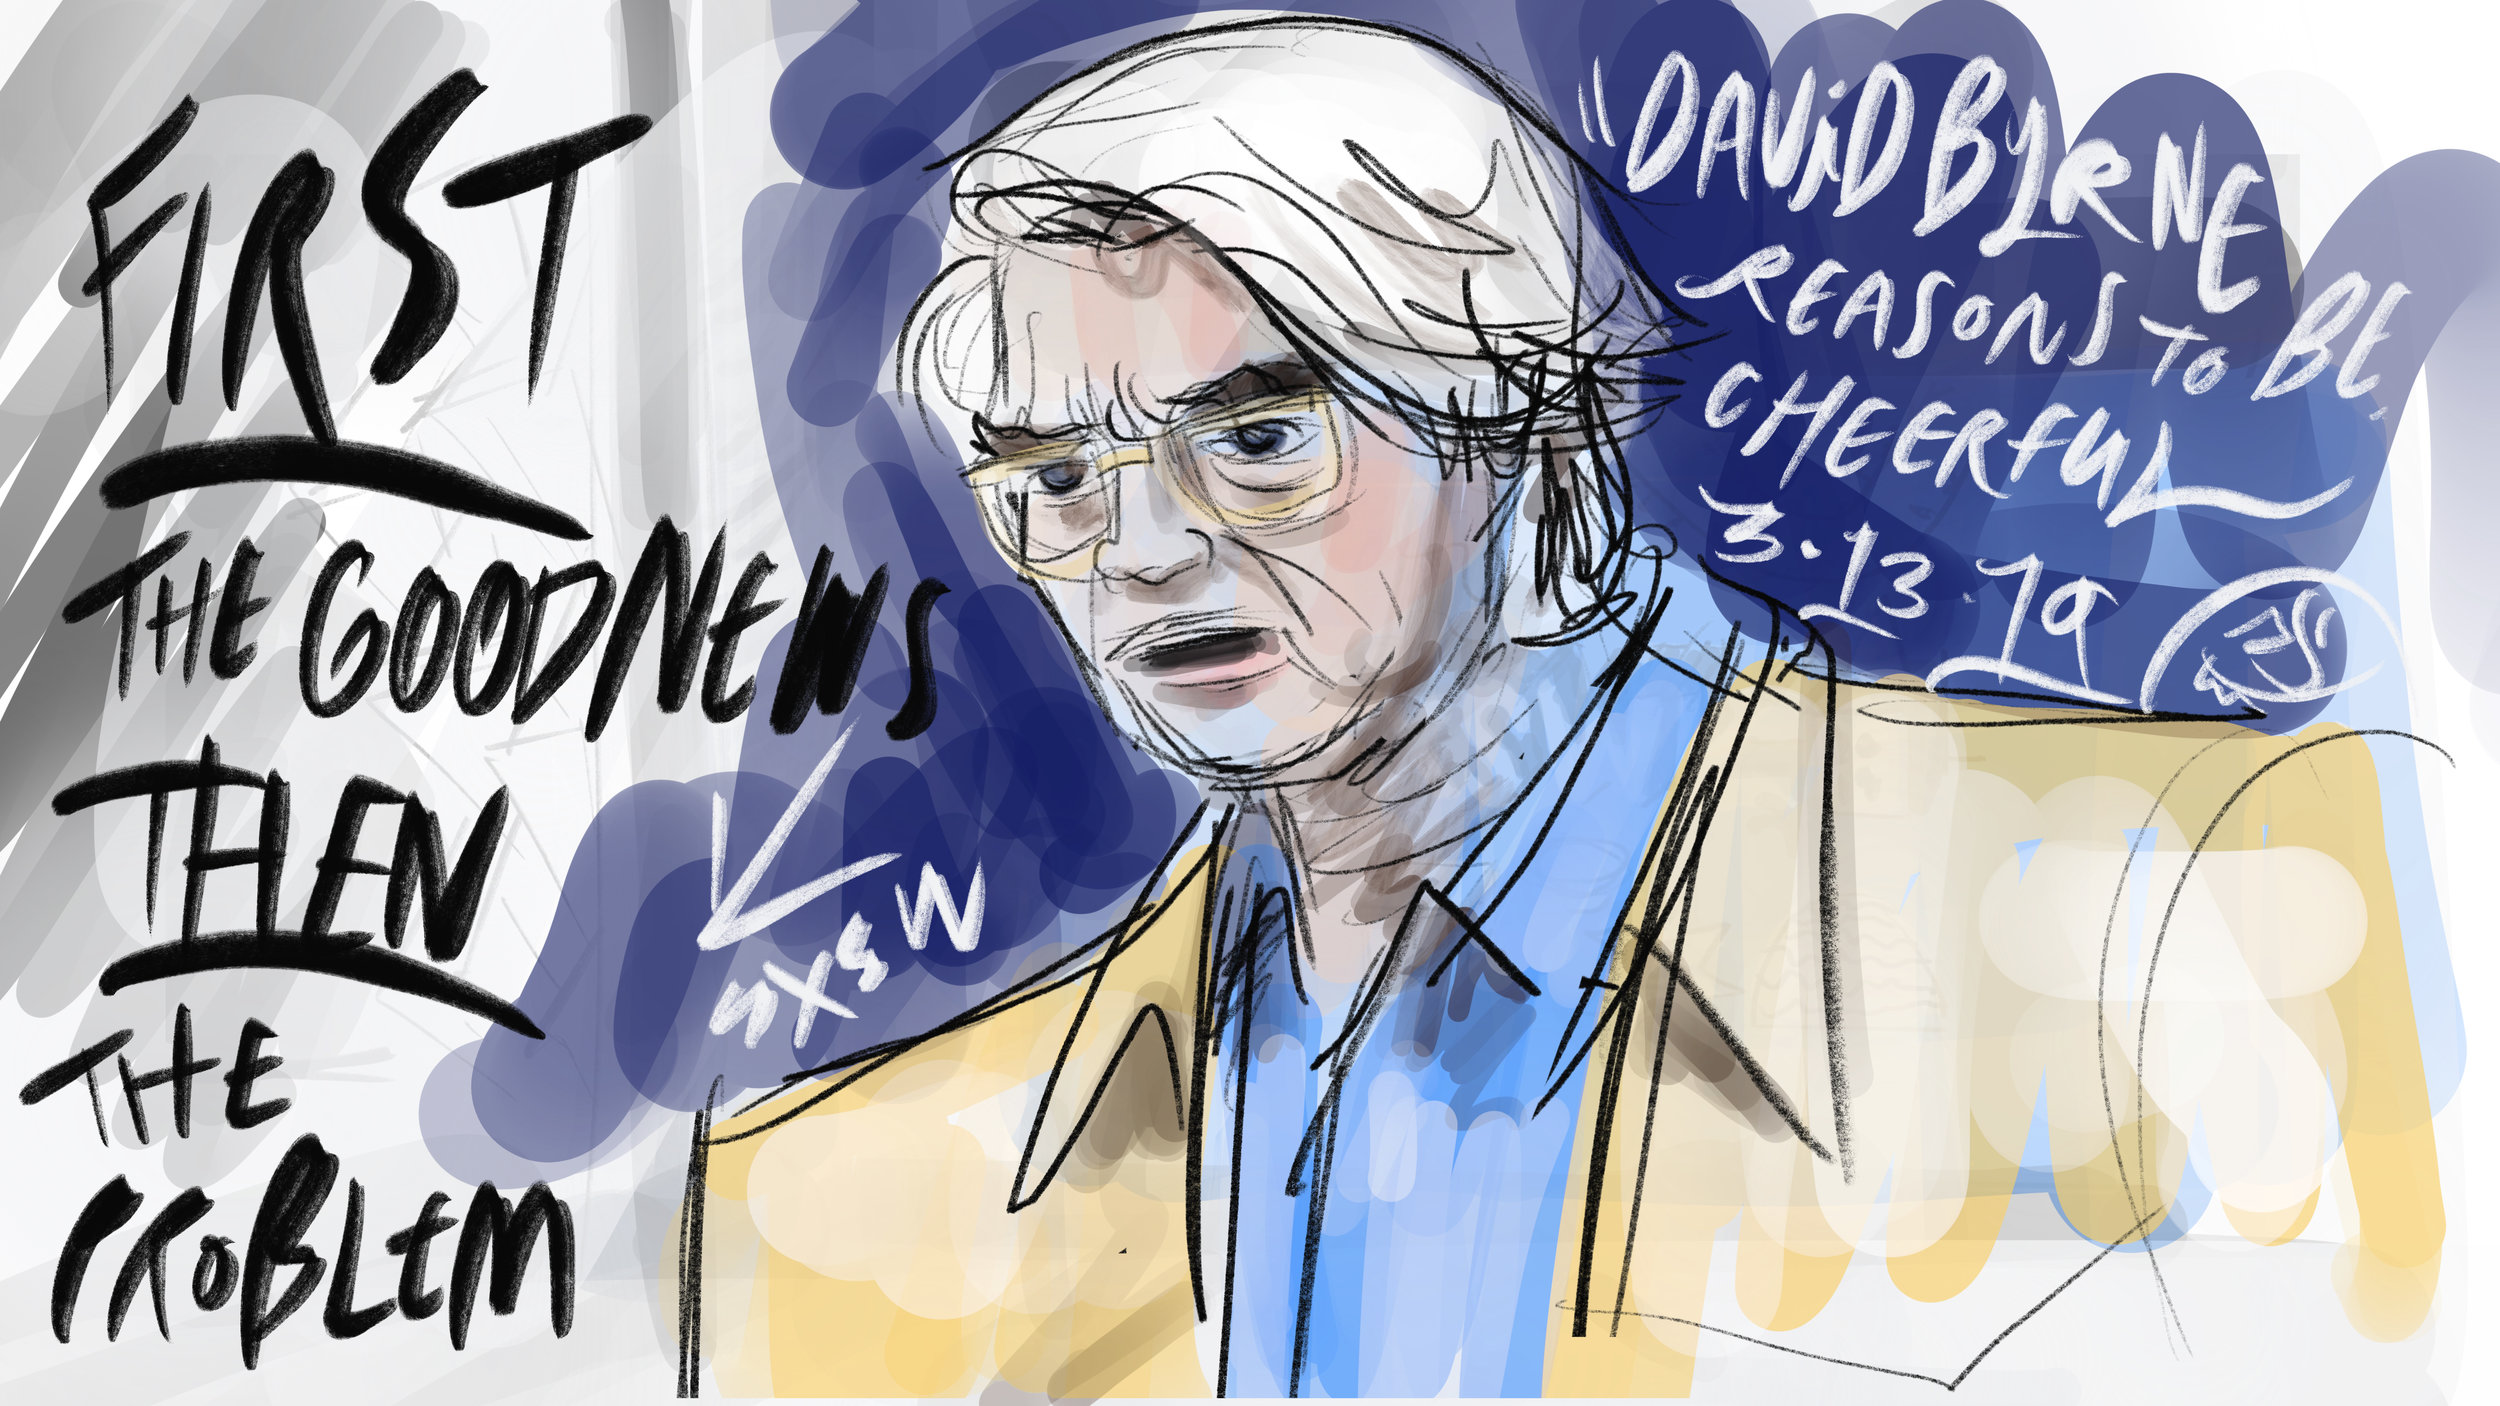 Featured Session: Reasons To Be Cheerful.  David Byrne's notes on the environment and social issues that have become a multimedia project helping him deal with everyday life.